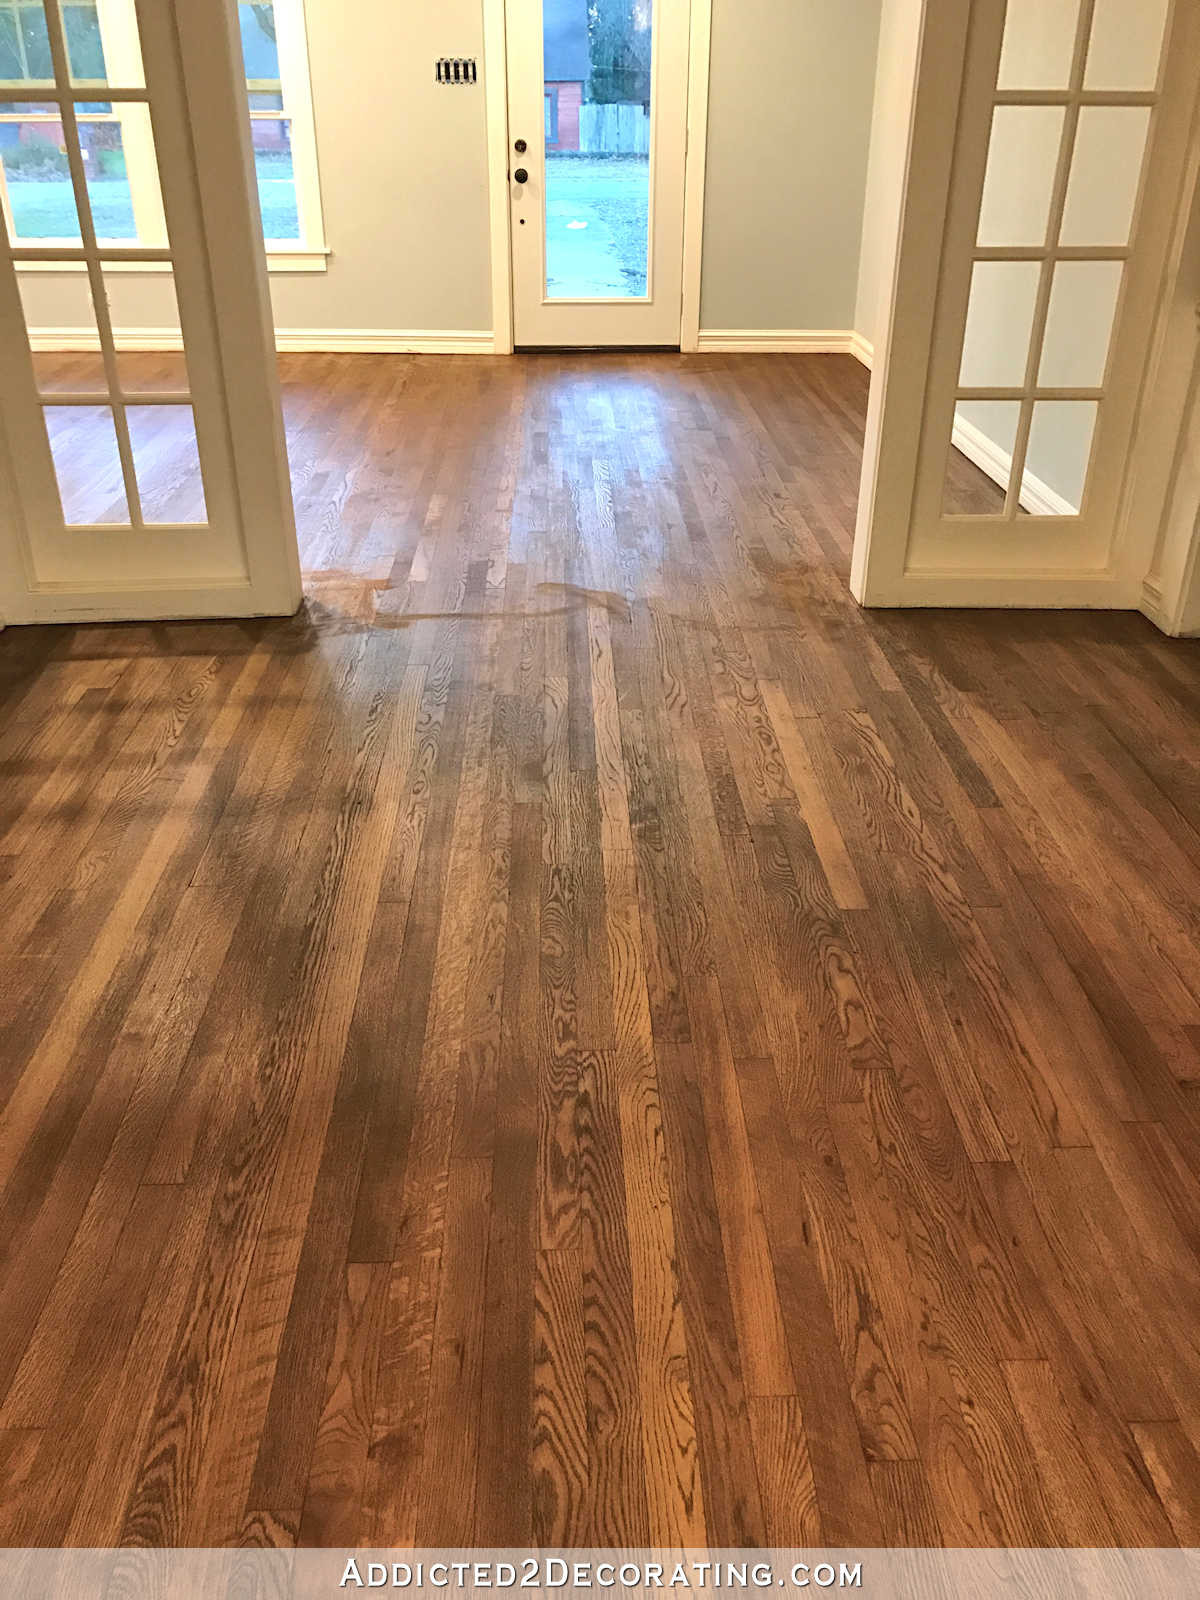 hardwood floor edge trim of adventures in staining my red oak hardwood floors products process pertaining to staining red oak hardwood floors 9 stain on entryway and music room floors